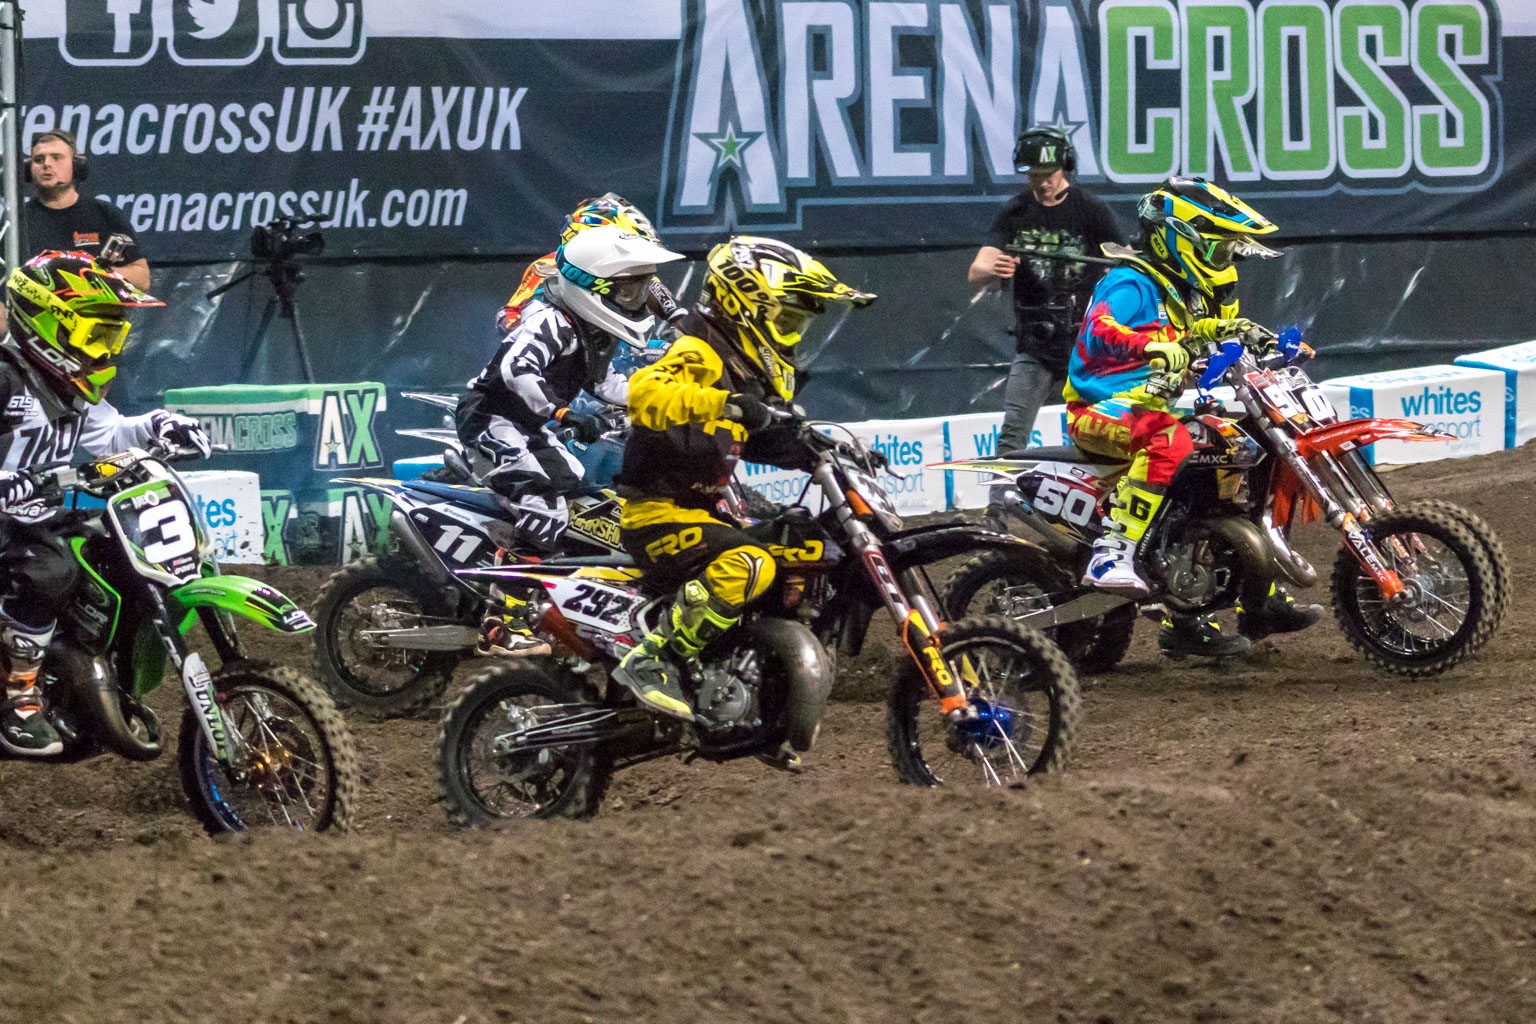 Bartlett blasts off the line to take the holeshot